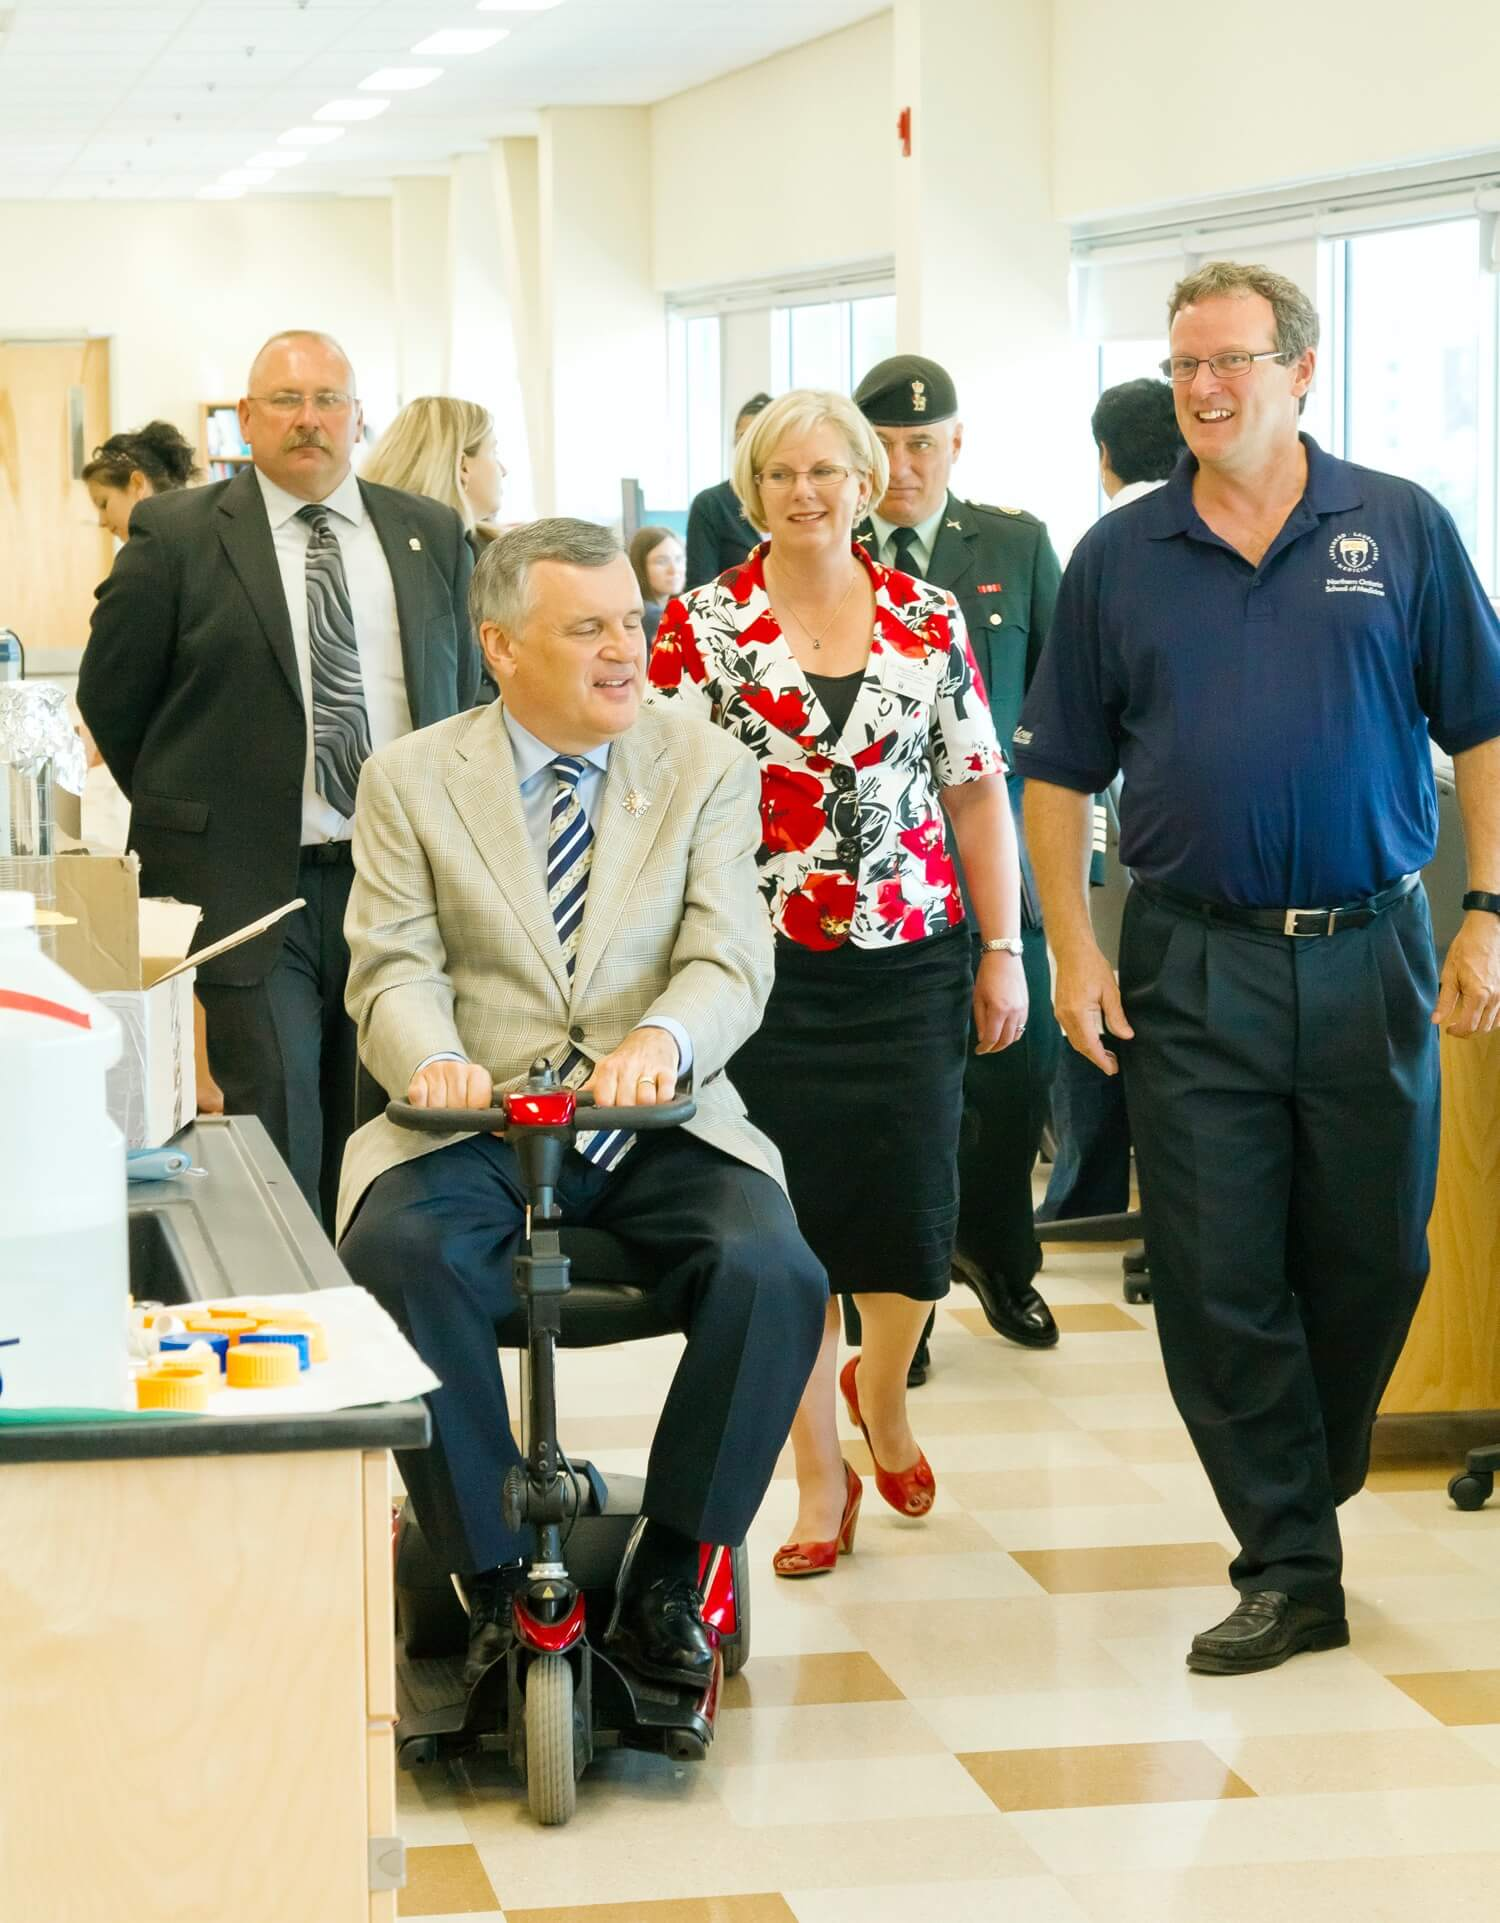 The Honourable David C. Onley, Former Lieutenant Governor of Ontario, touring NOSM's Sudbury Campus with Dr. Topps, 2010